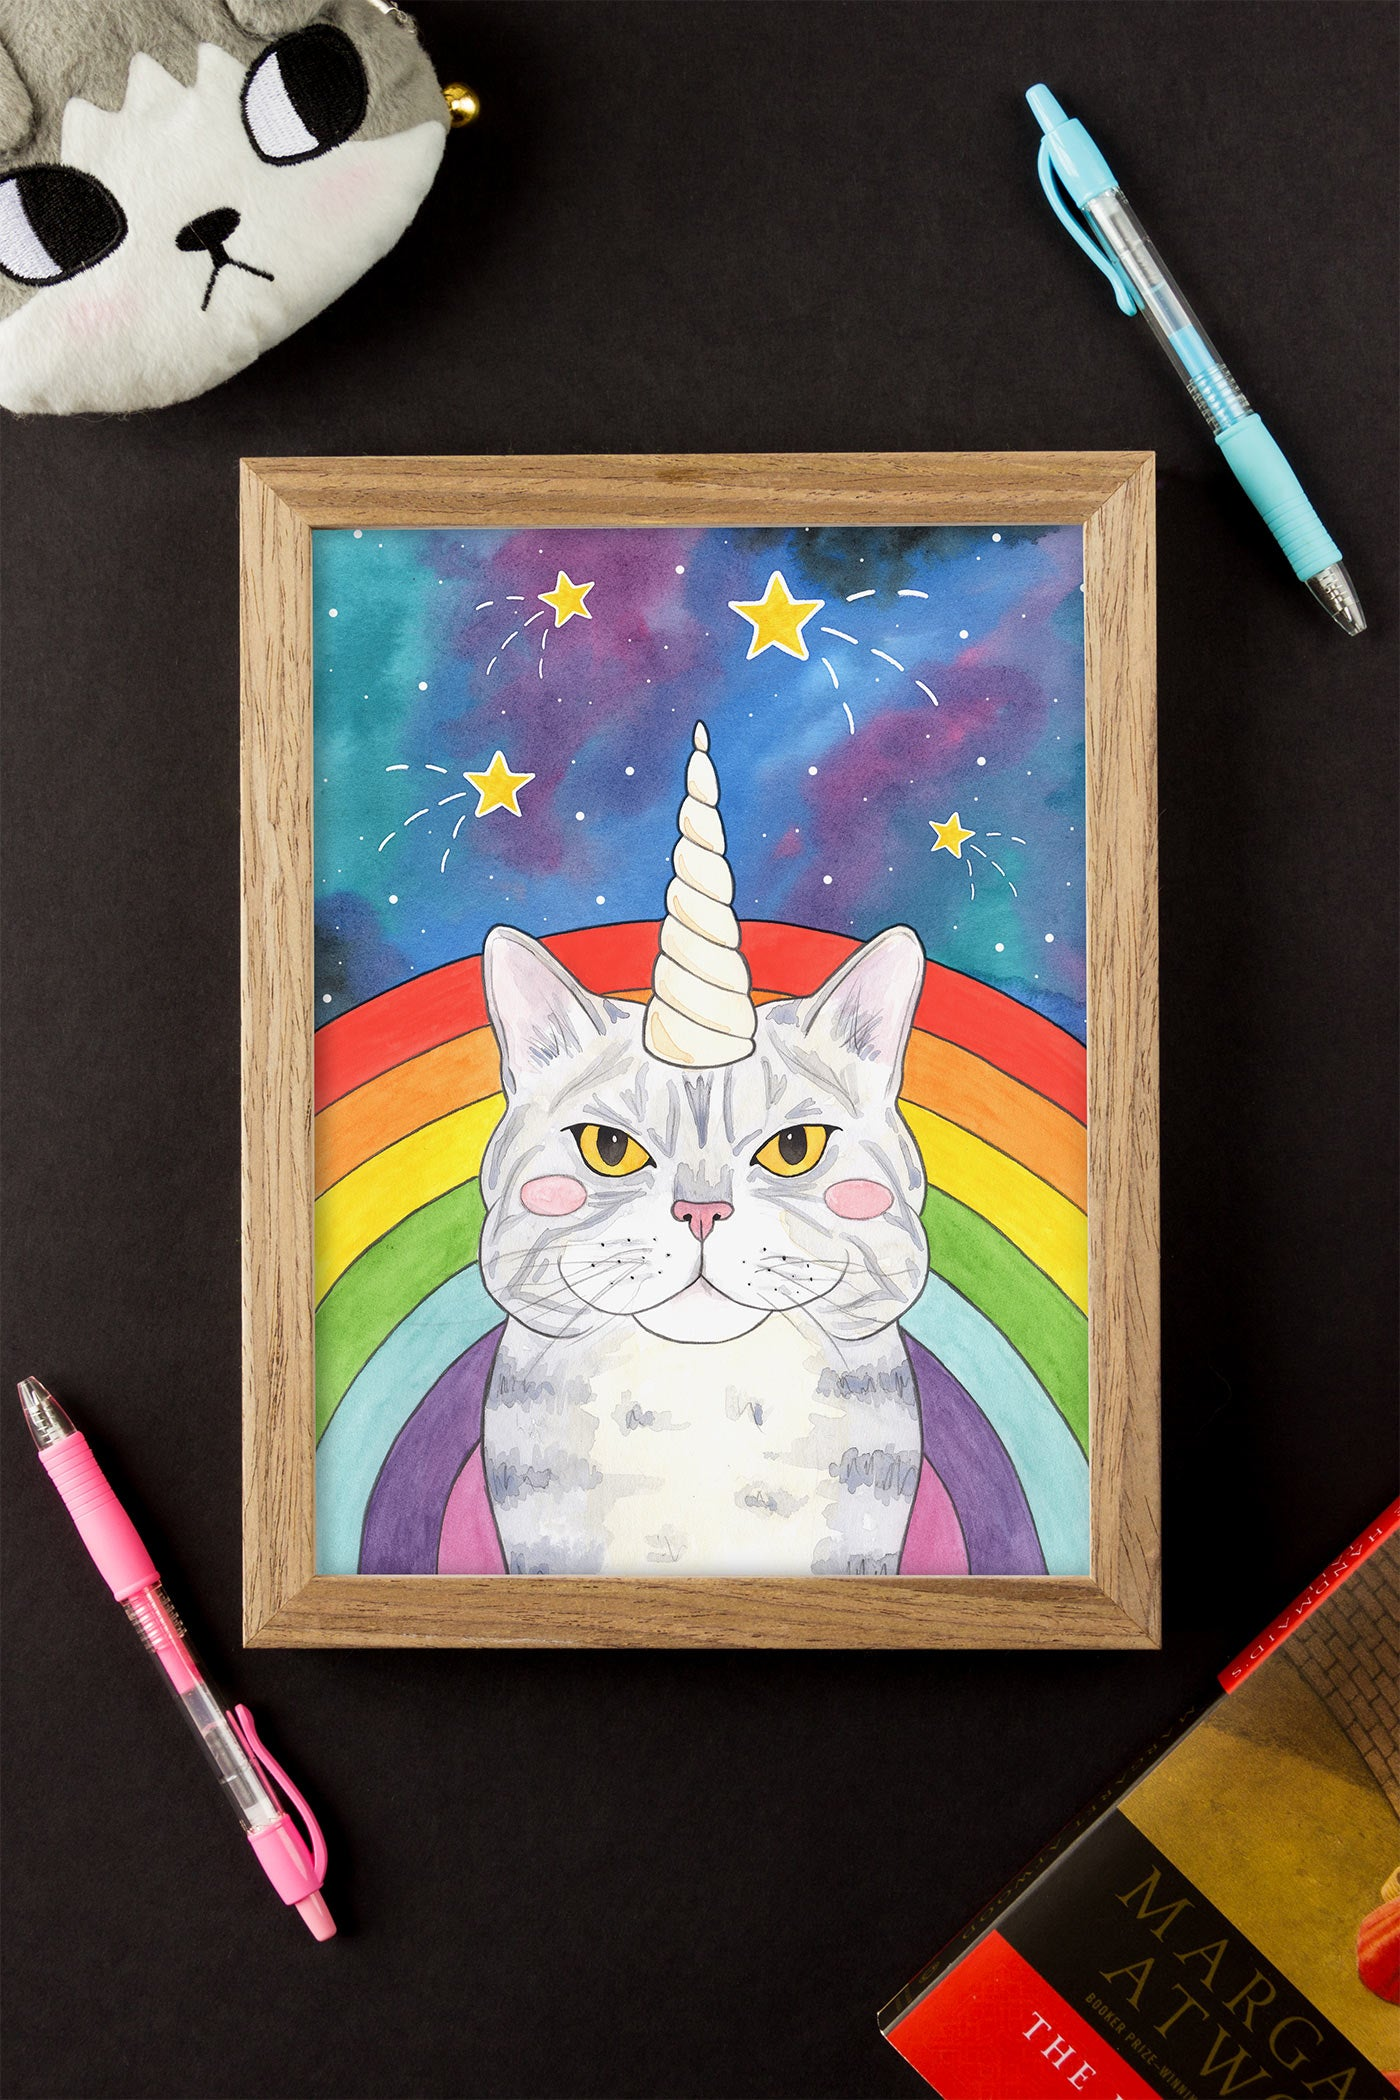 Magical Caticorn Cosmic Rainbow Illustrated Art Print - A Rose Cast